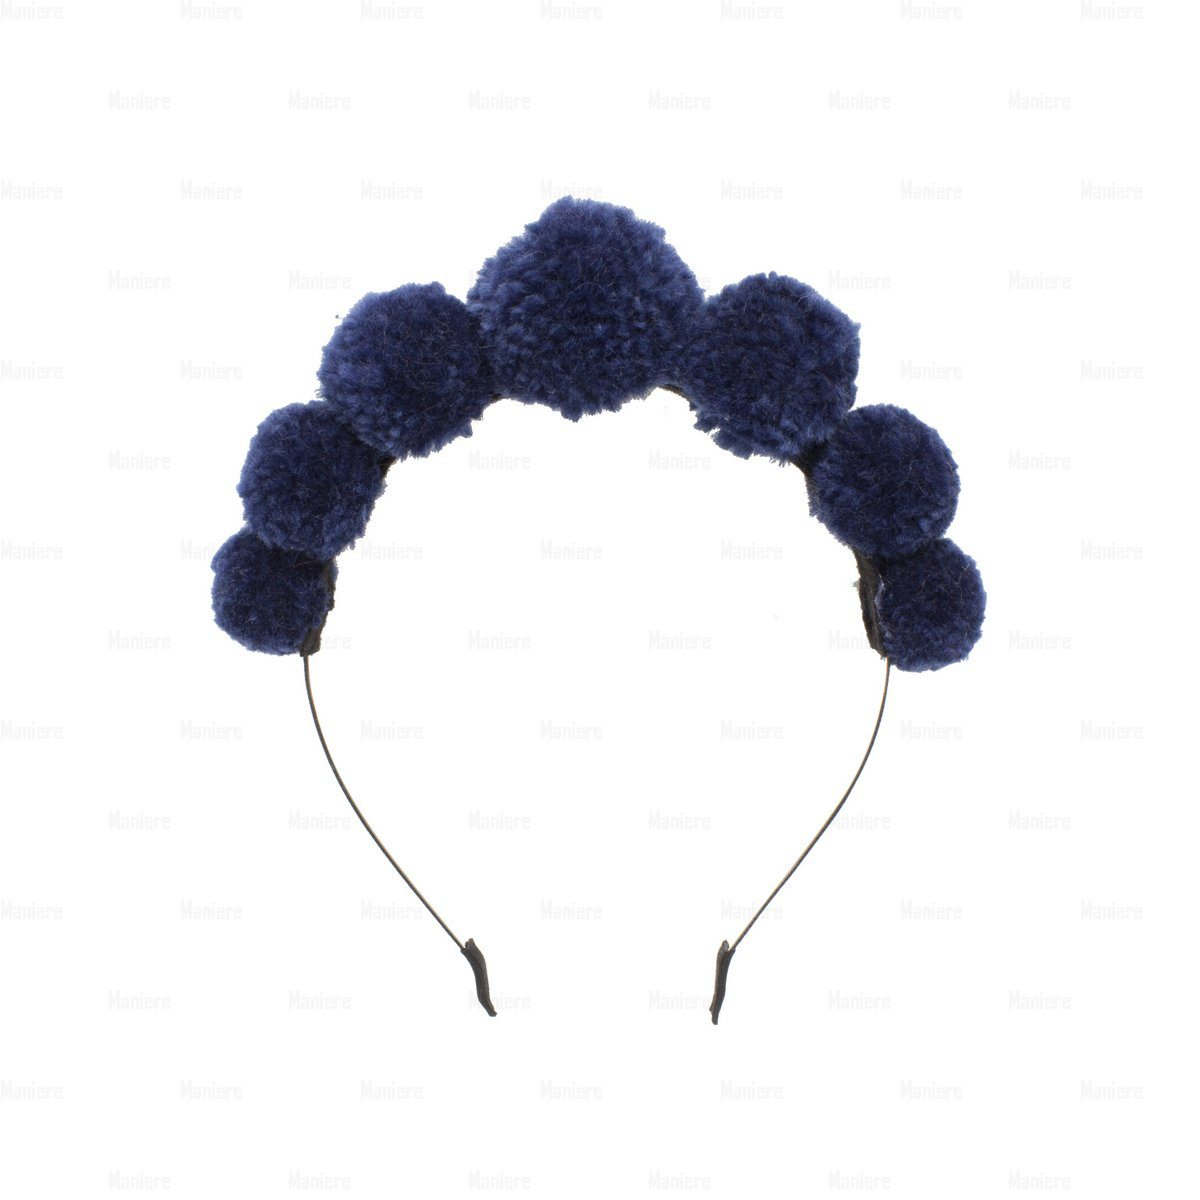 Soft-Yarn-Pops-Headband Headband Manière Blue Night